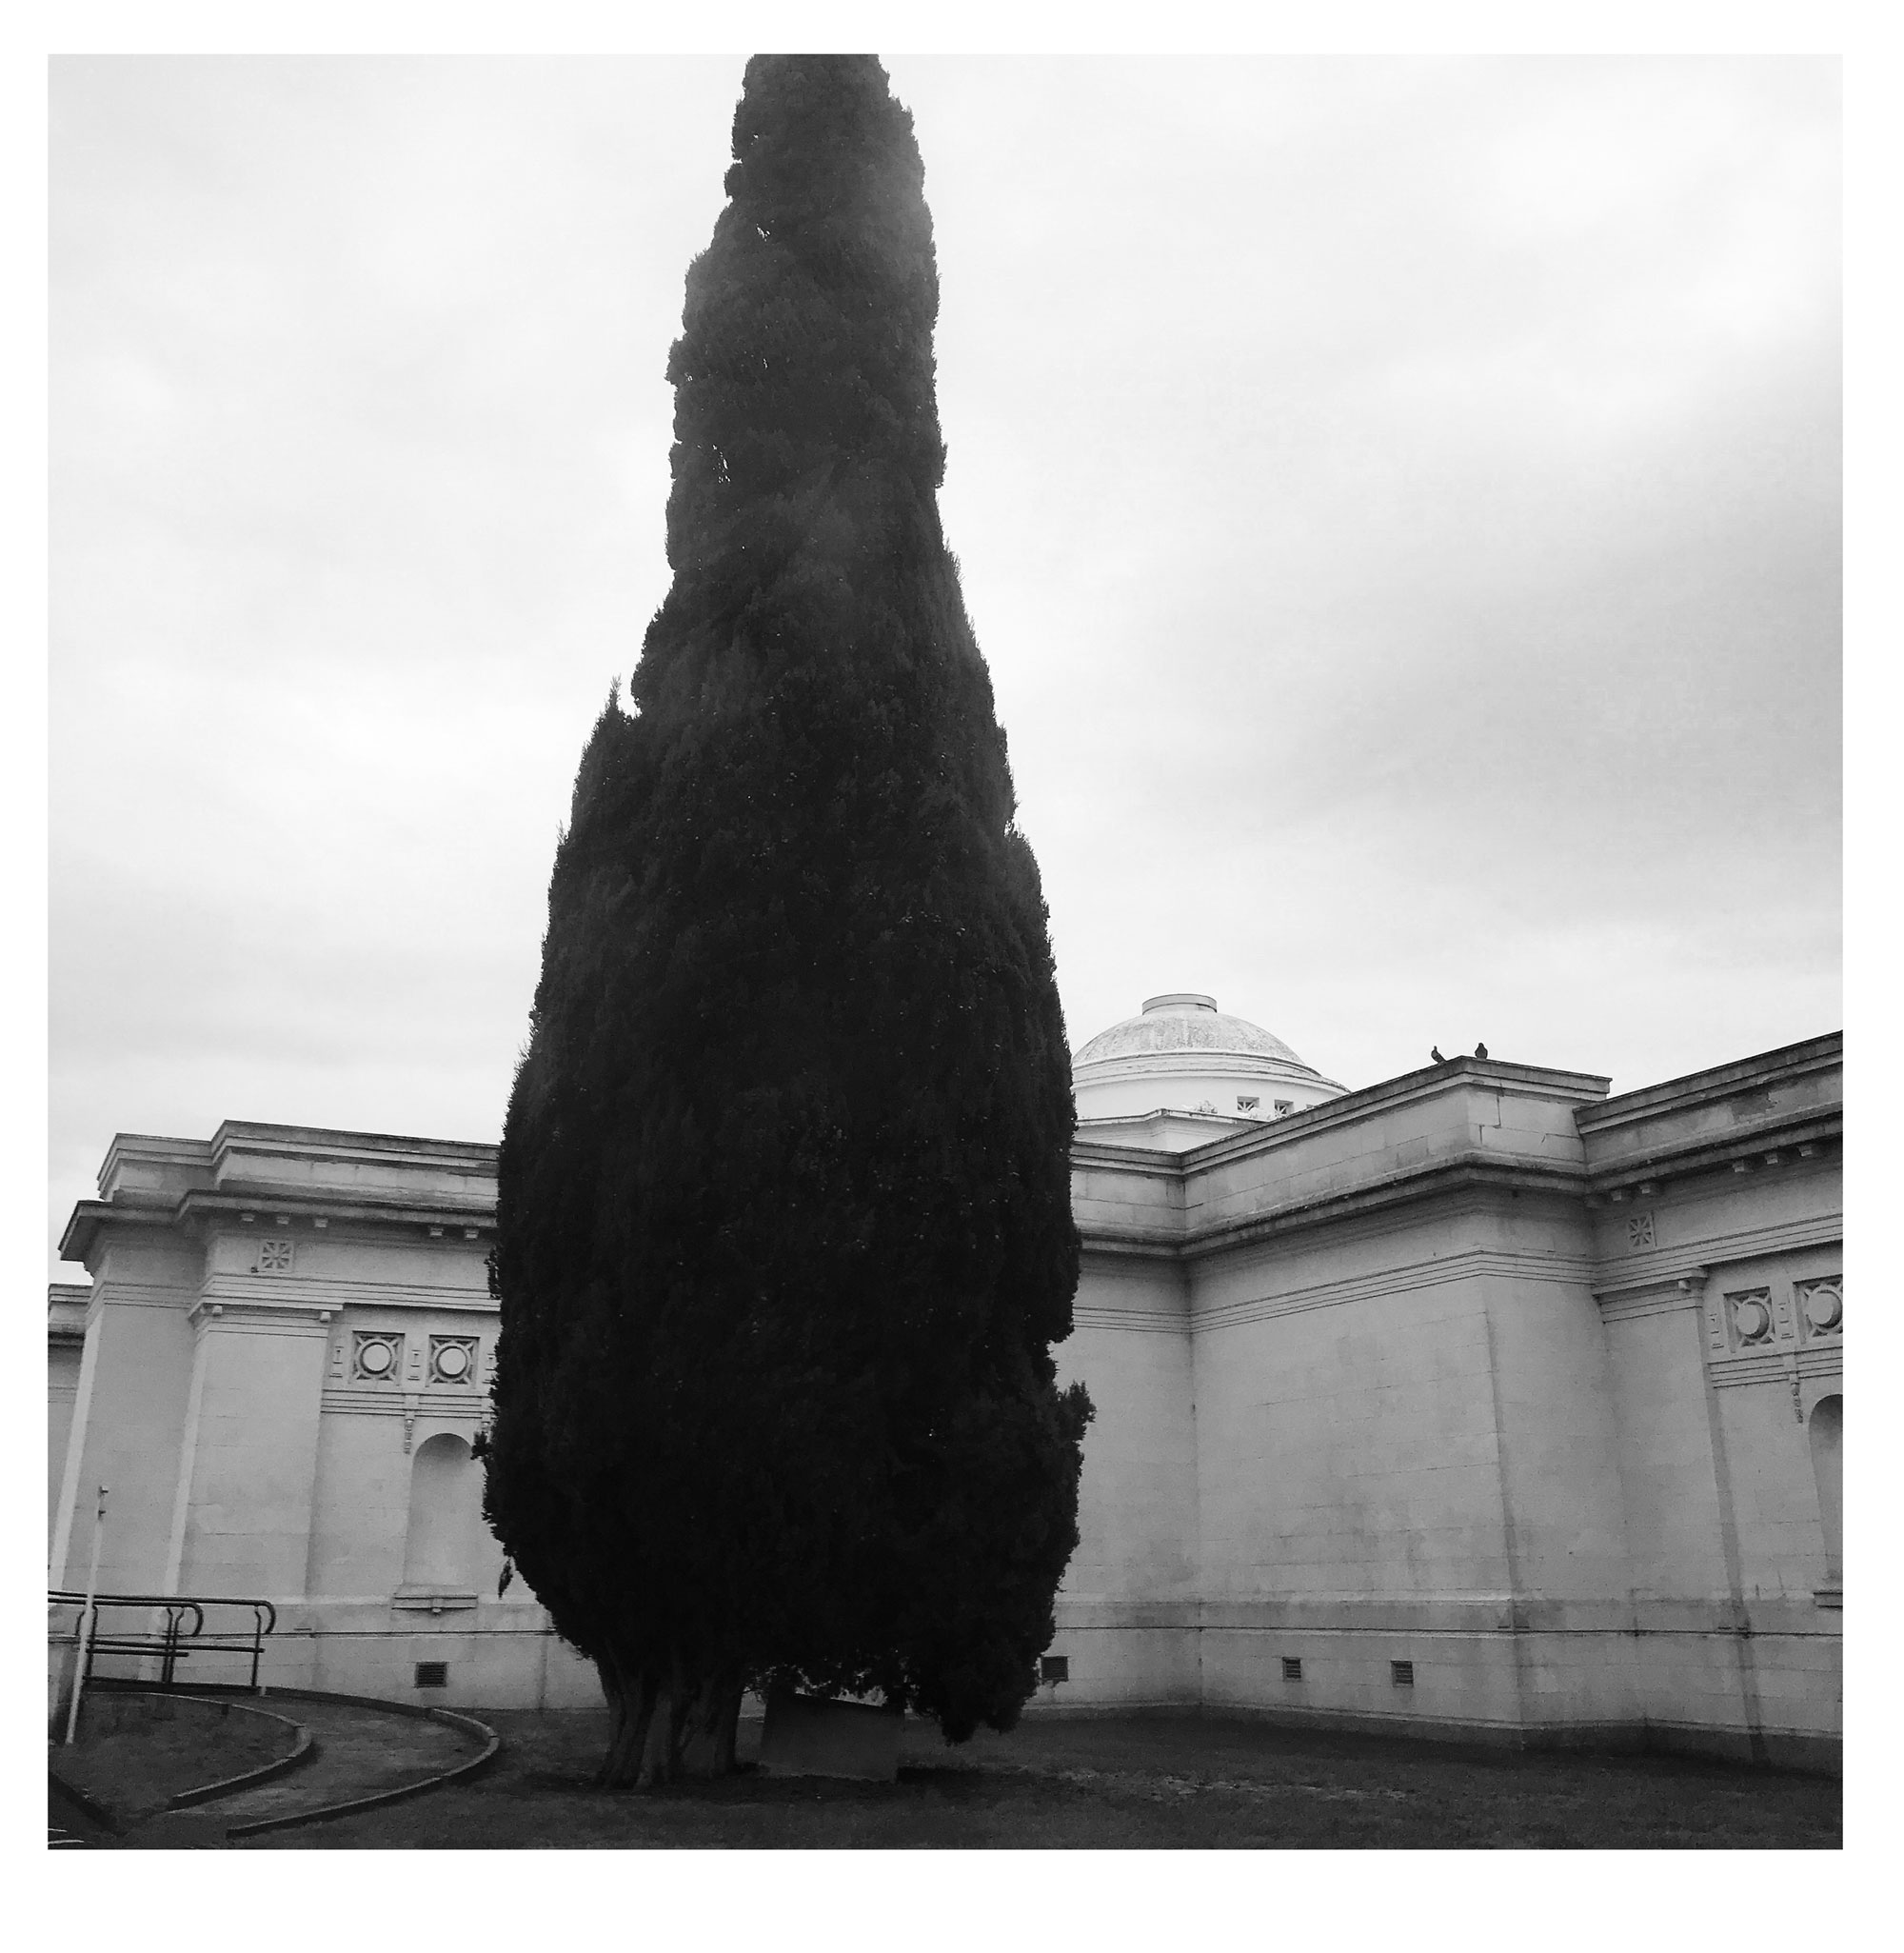 Sarjeant and tree from the car, in the rain, 31 October 2017